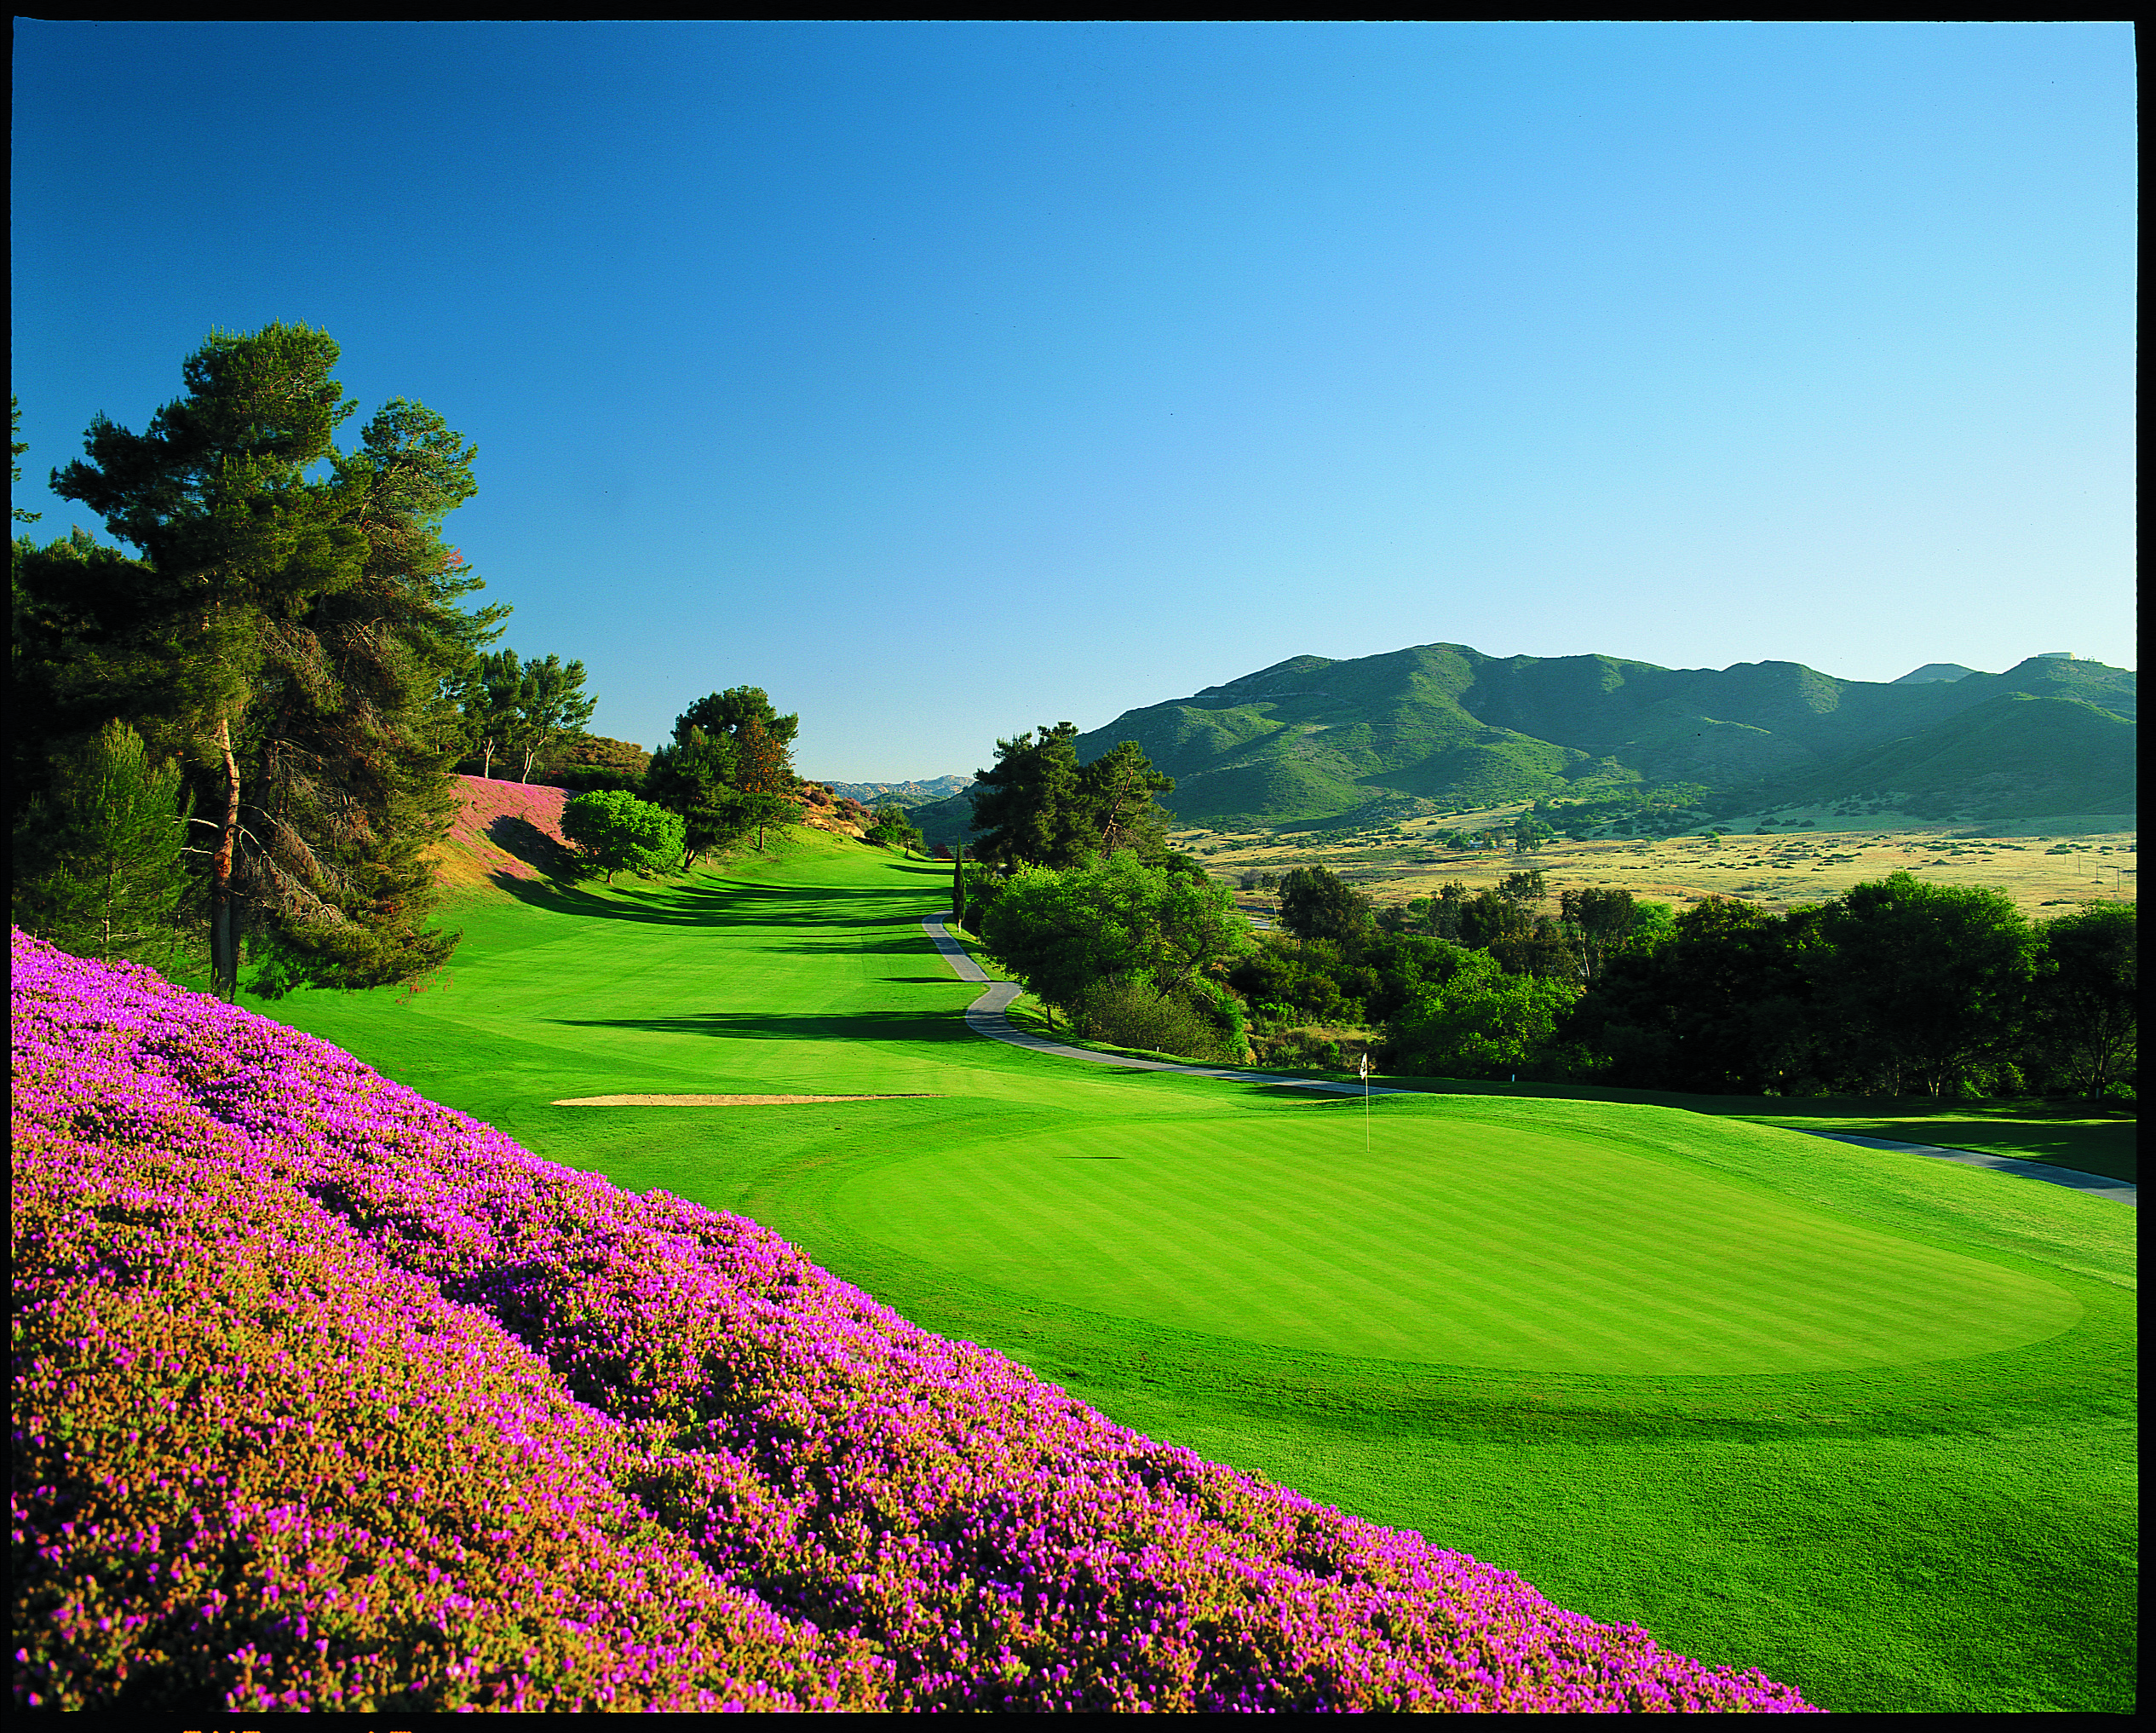 Located in Fallbrook, Pala Mesa Golf Resort is easily accessible via the scenic I-15 corridor connecting Los Angeles and Orange counties to San Diego.